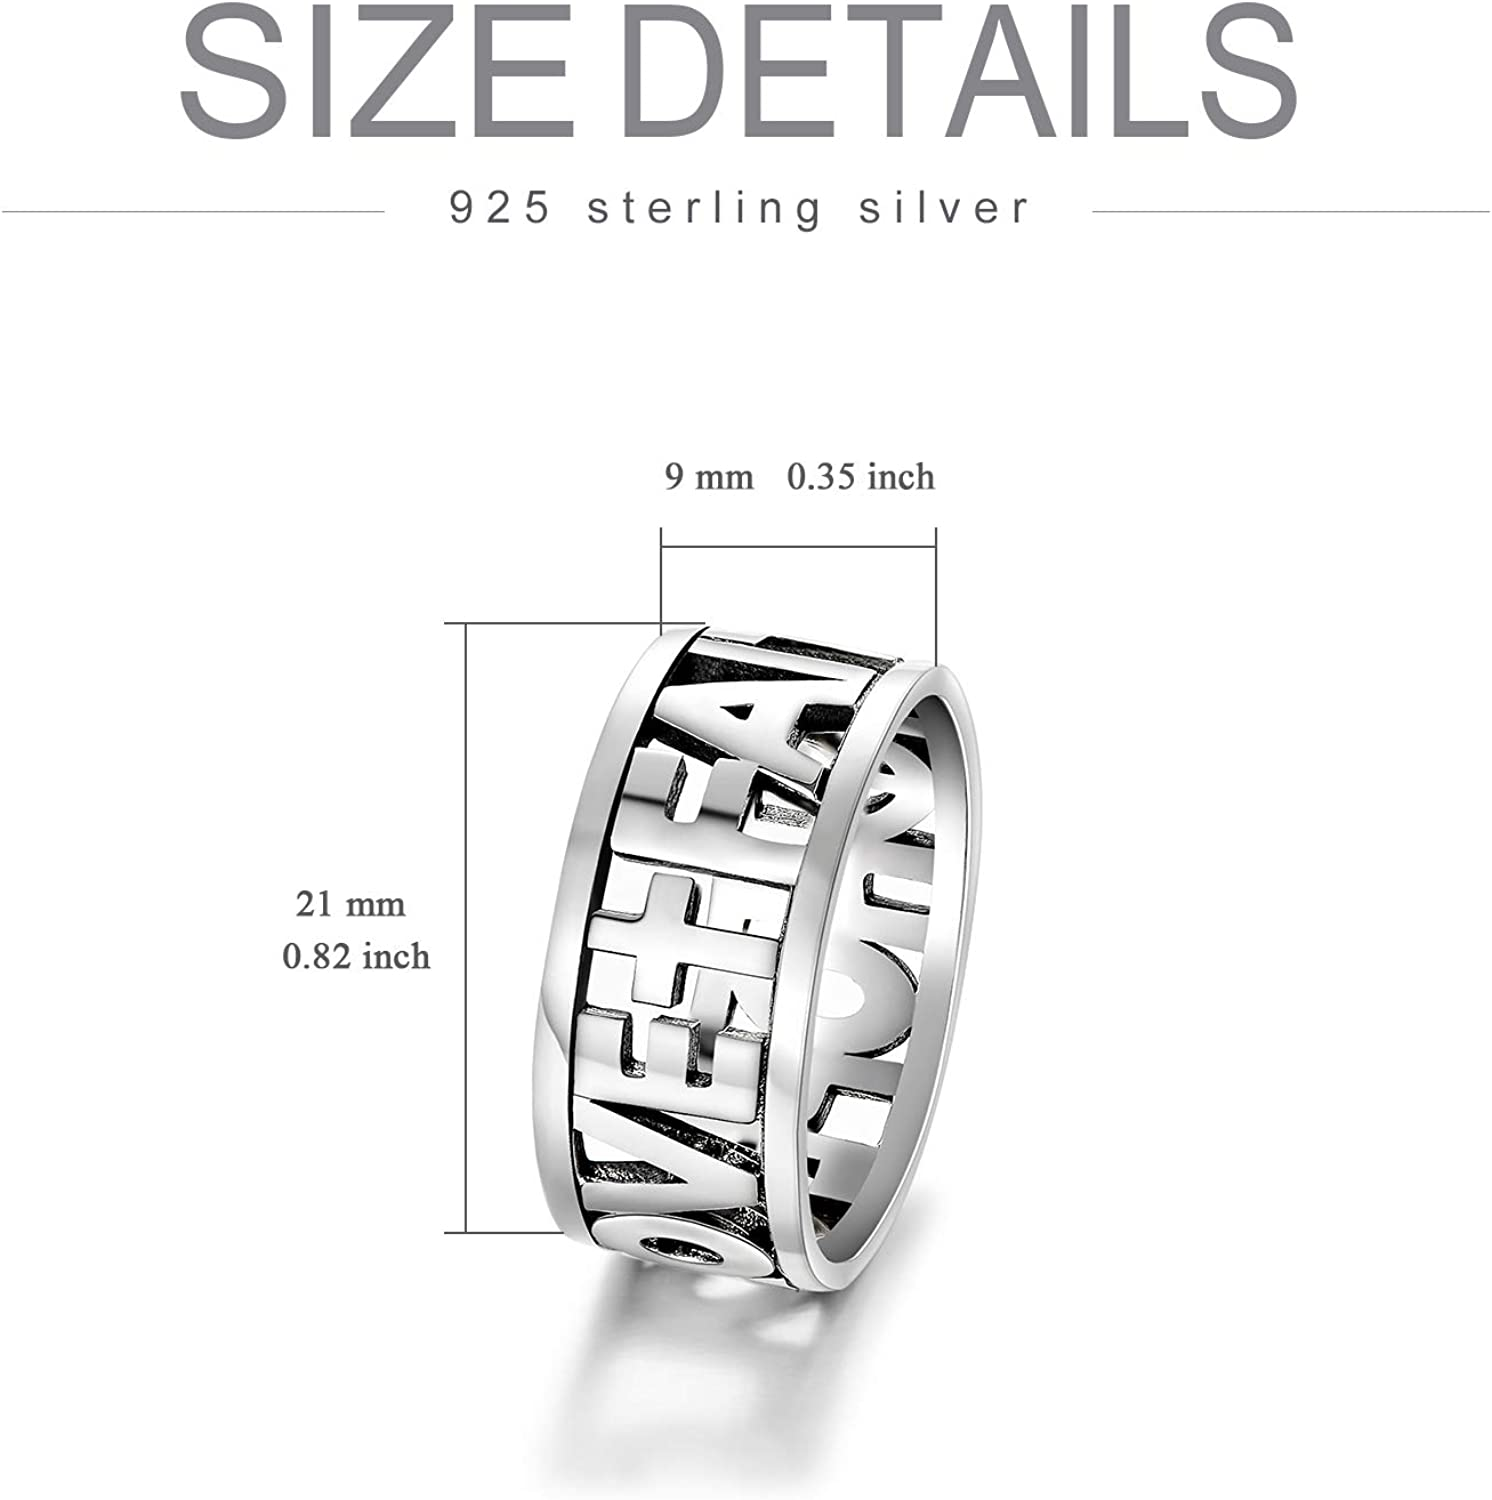 Oxidized Silver Religious Jewelry for Women Ladies Size 6-10 PEIMKO Vintage Sterling Silver Faith Hope Love Band Rings